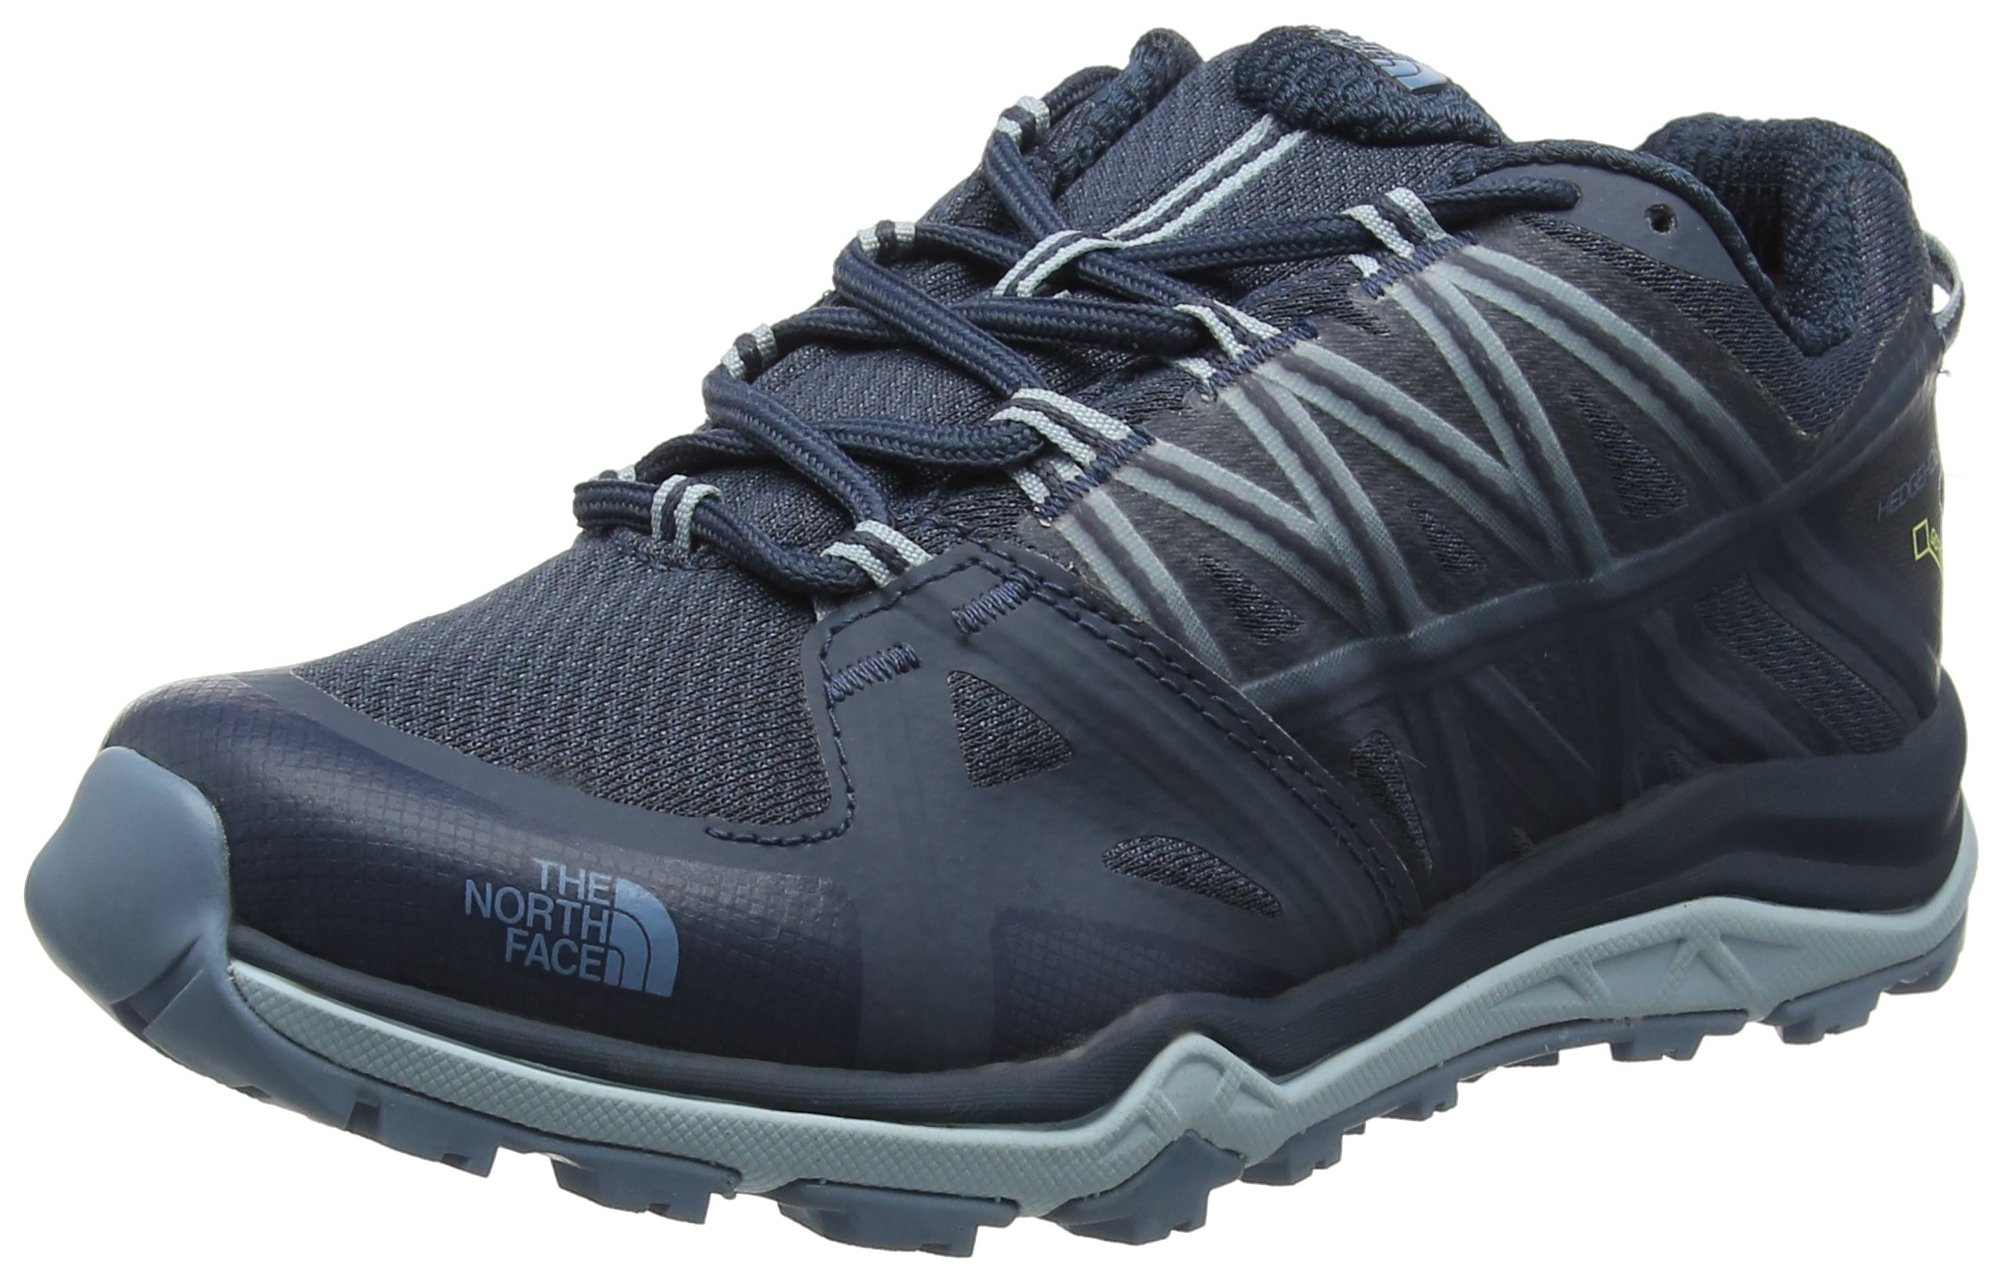 0f9be738990 THE NORTH FACE Women s s Hedgehog Fastpack Lite Ii GTX Low Rise Hiking Boots